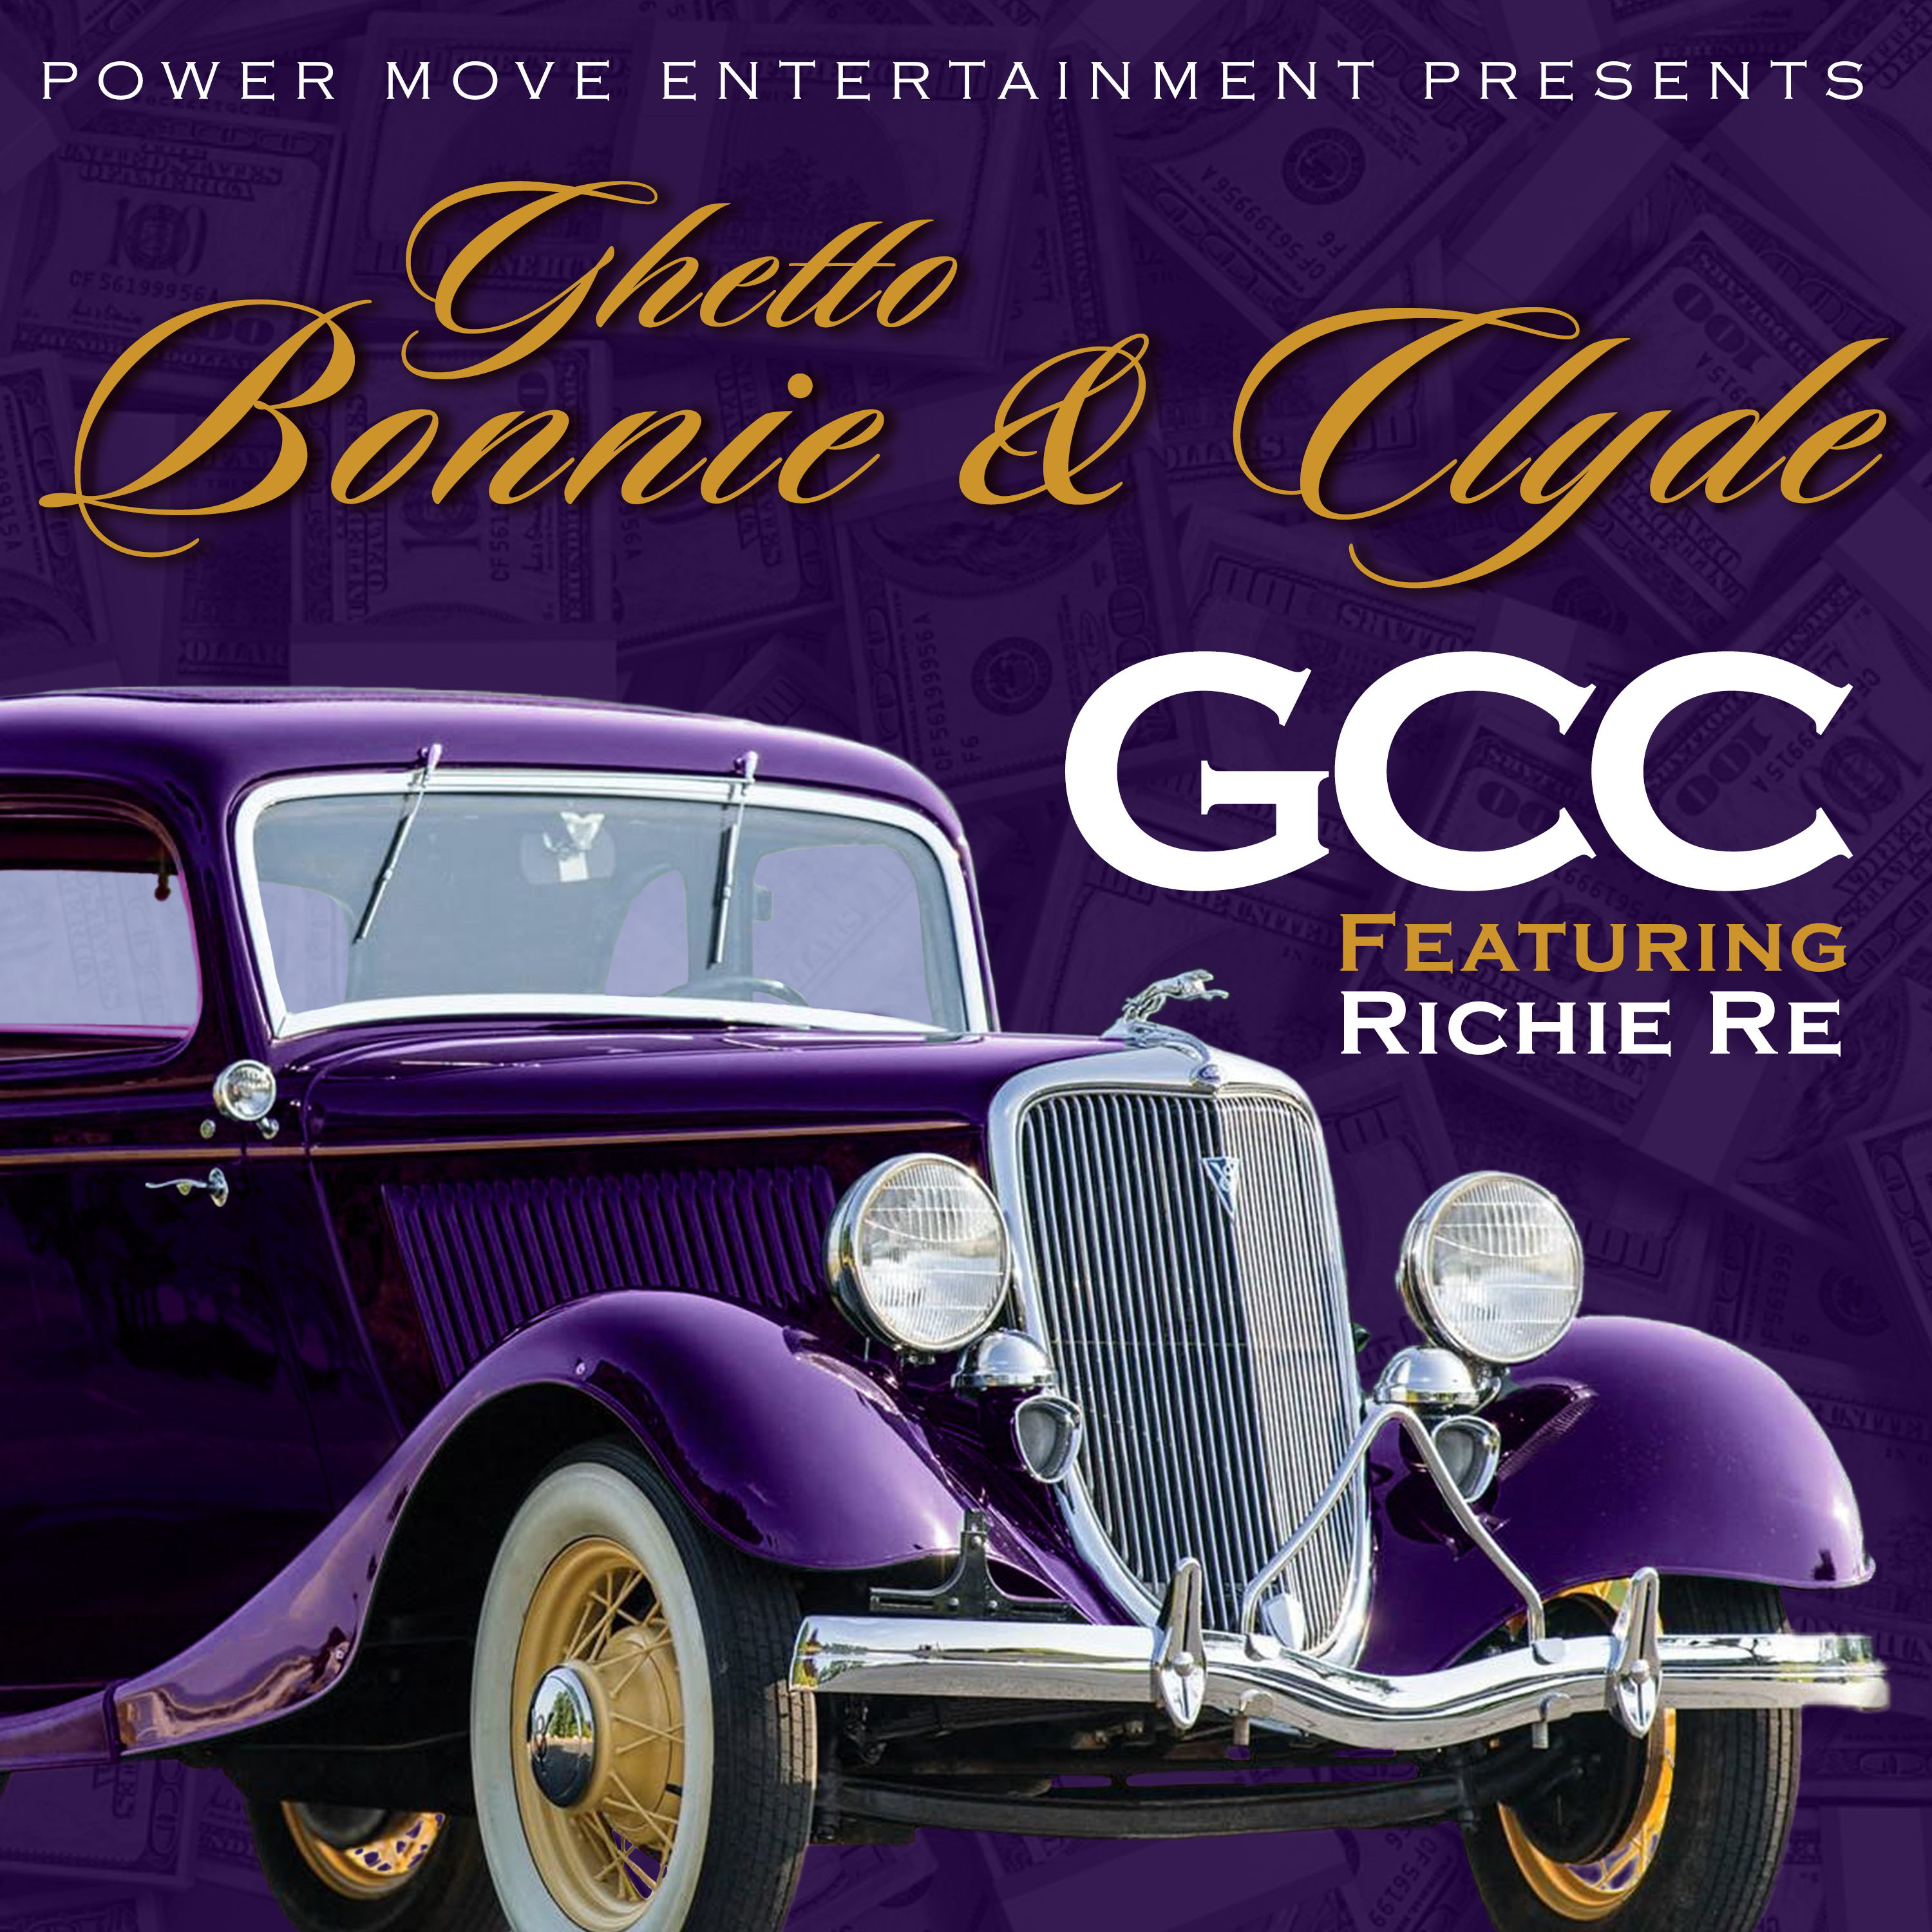 G.C.C. Releases Ghetto Bonnie & Clyde Featuring Richie Re